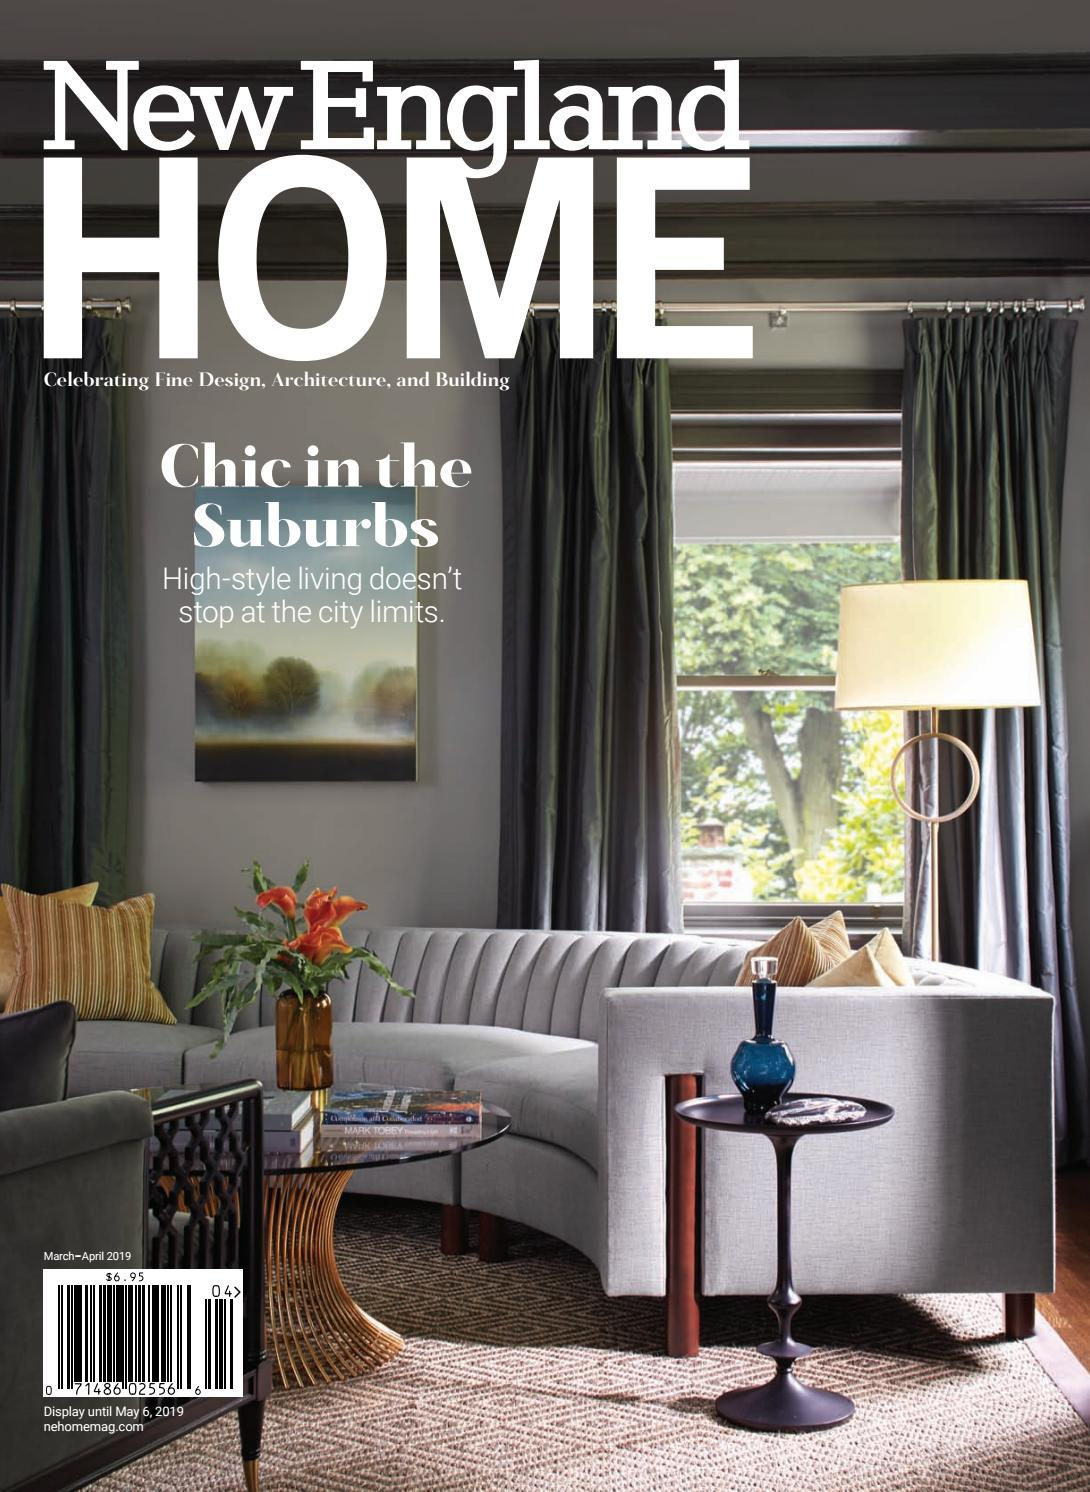 ranch home remodel annie selke ranch house makeover home redesign New England Home March April 2019 by nehomemag - issuu